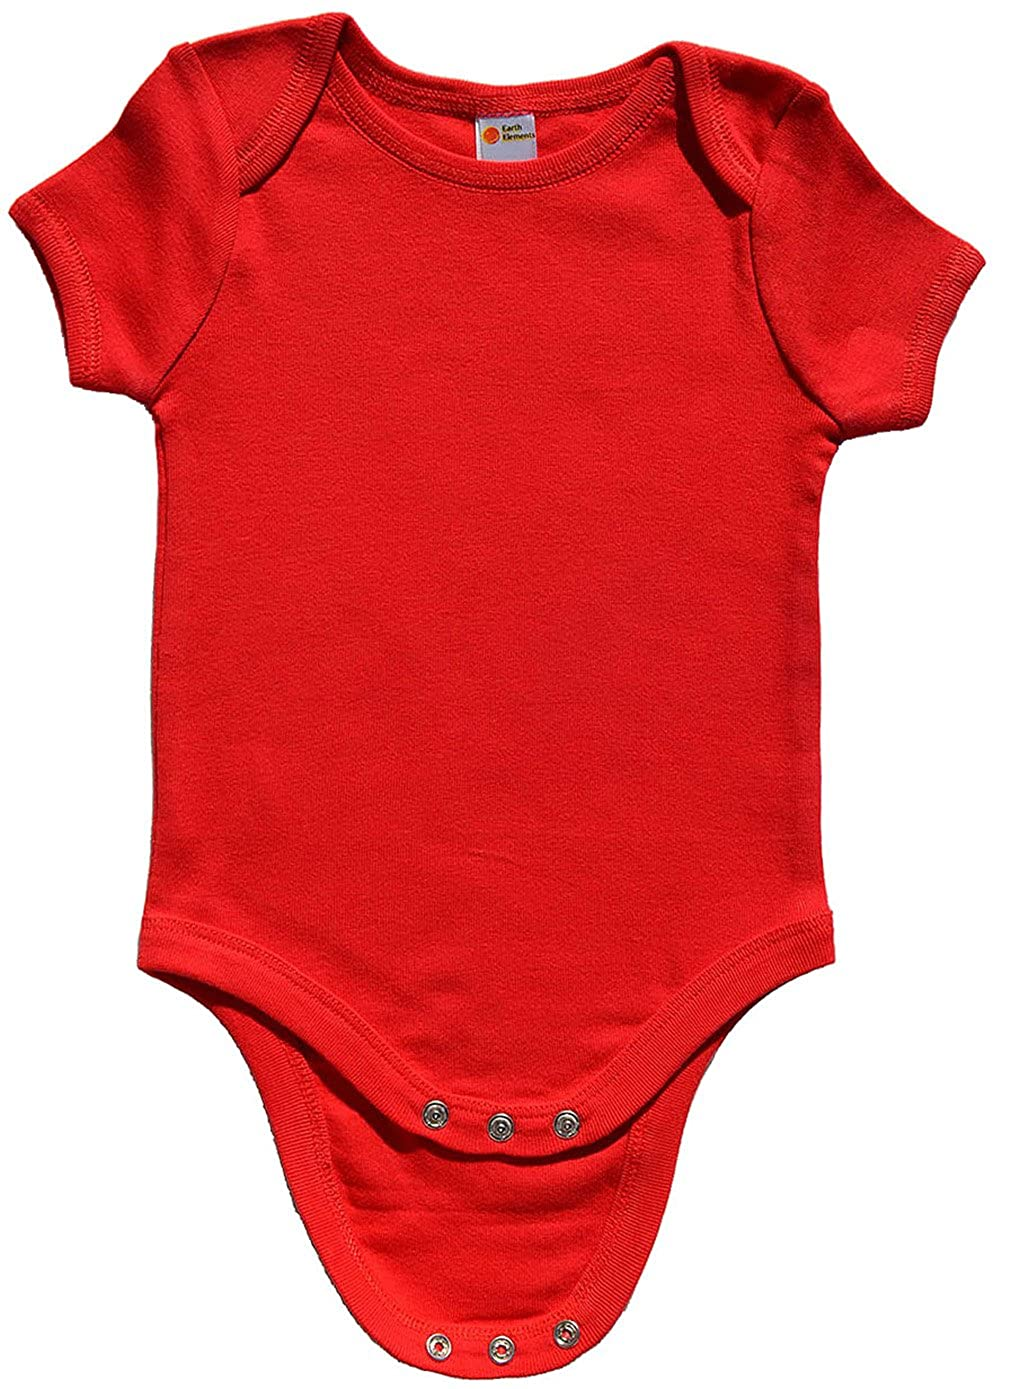 Earth Elements Baby Short Sleeve Bodysuit ABBABS0N1S-BL-03-$P